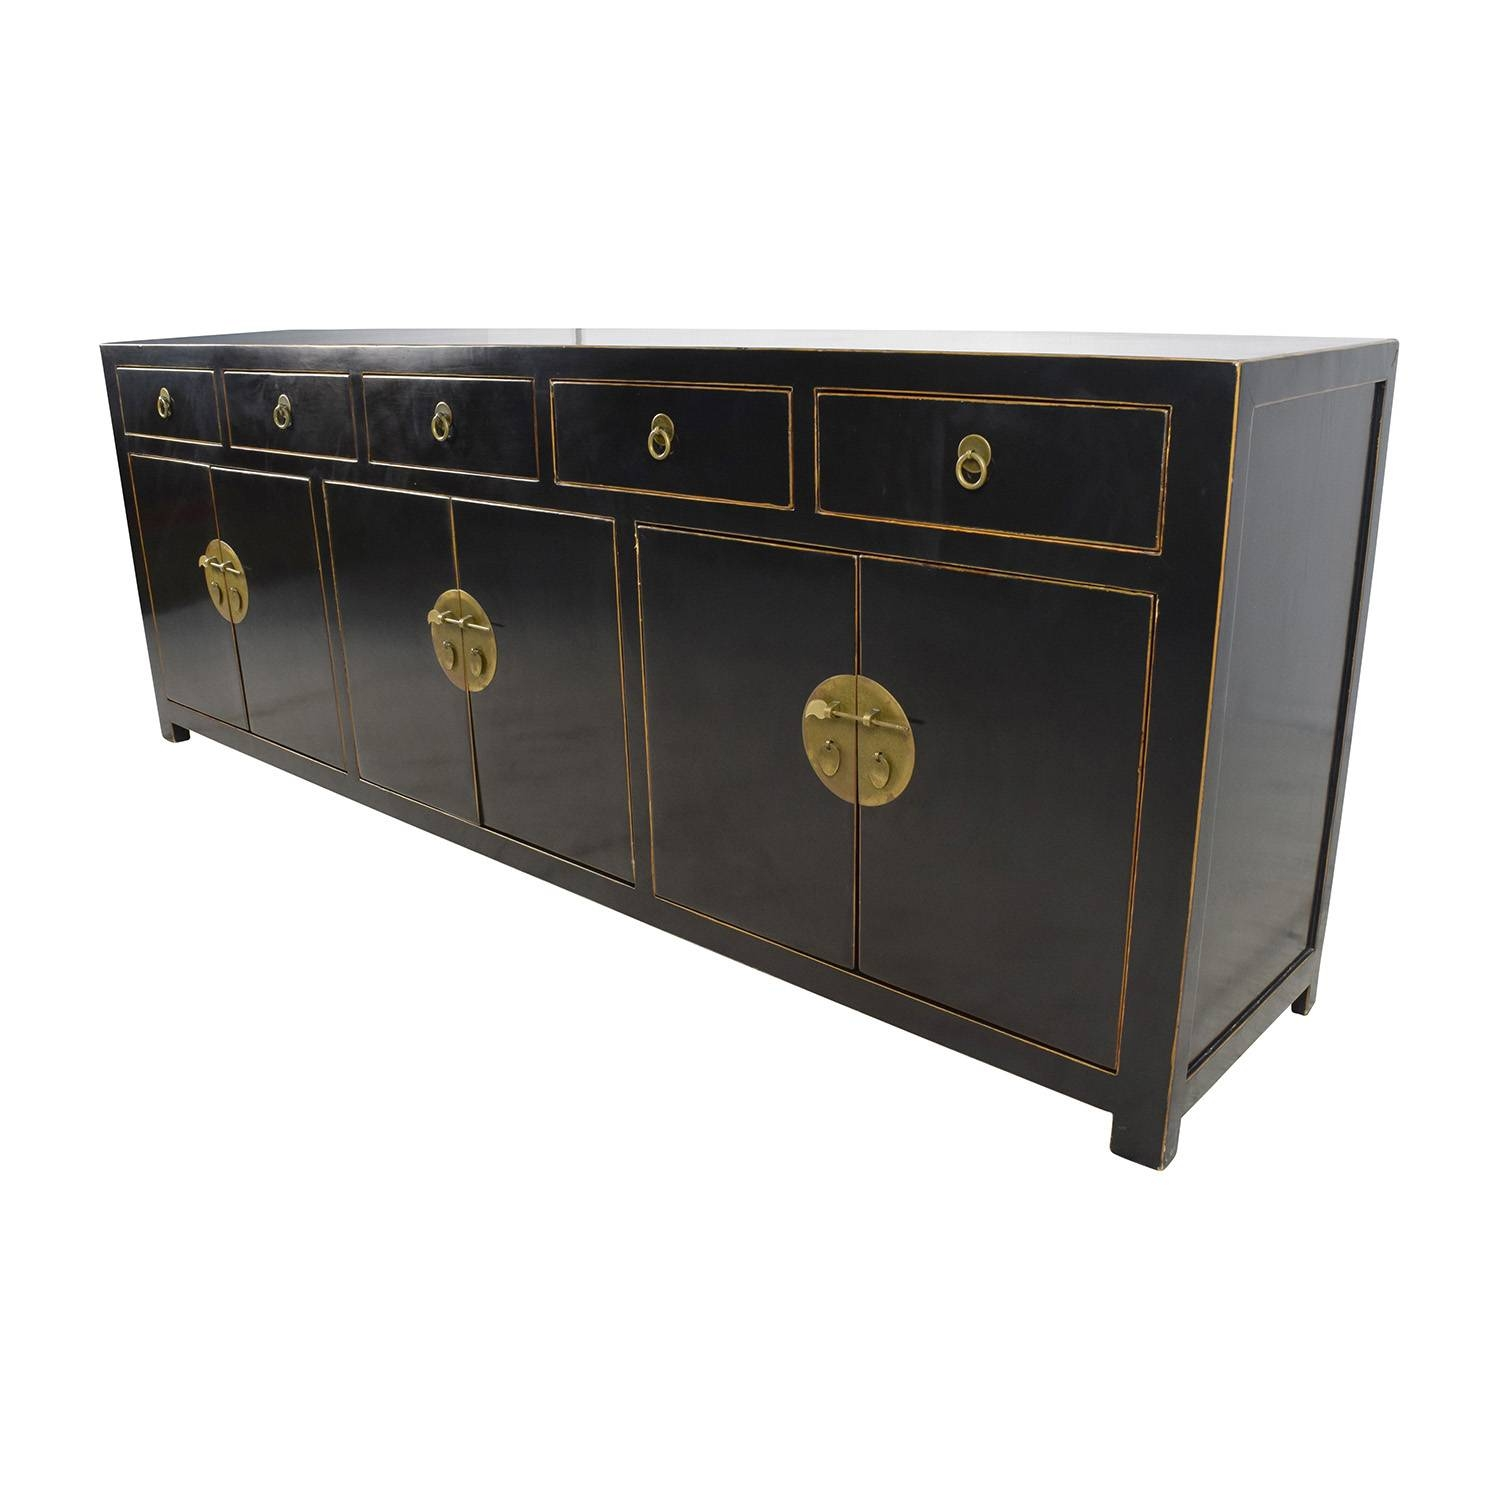 85% Off – Custom Made Black Drawer And Cabinet Sideboard / Storage With Regard To Most Recently Released Black Sideboard Cabinets (#1 of 15)